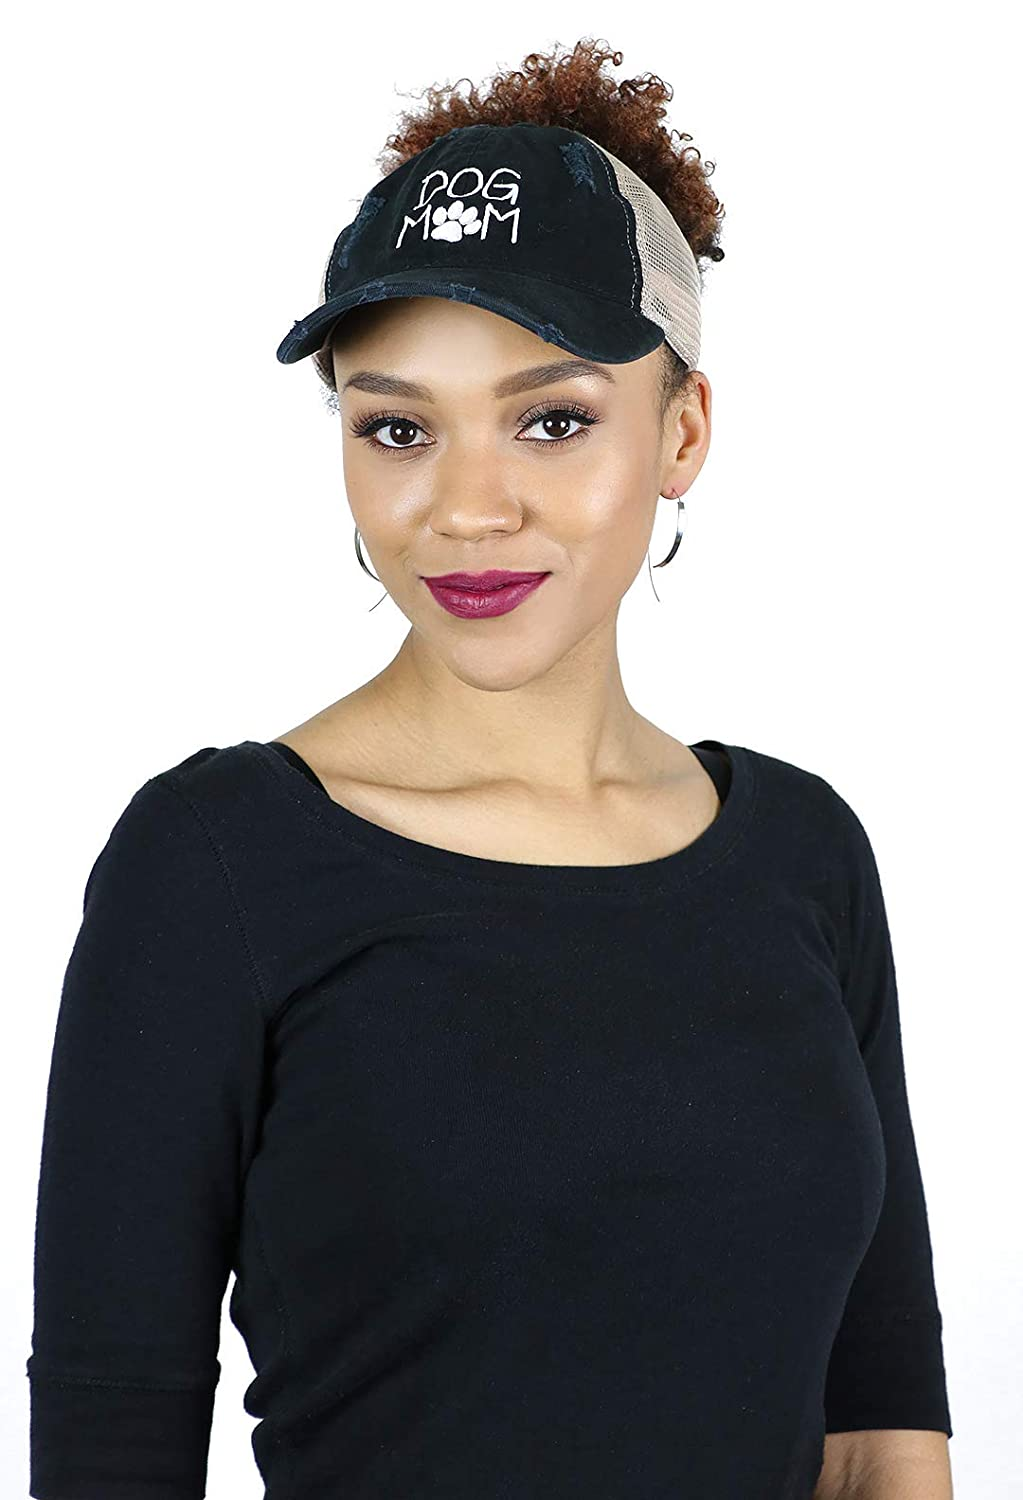 50893a493fcf2b Dog Mom Ponytail Hat Messy Bun Beanie Cute Baseball Cap for Women Dad Hat  Mesh Back Adjustable for Big Heads (Black) at Amazon Women's Clothing store: